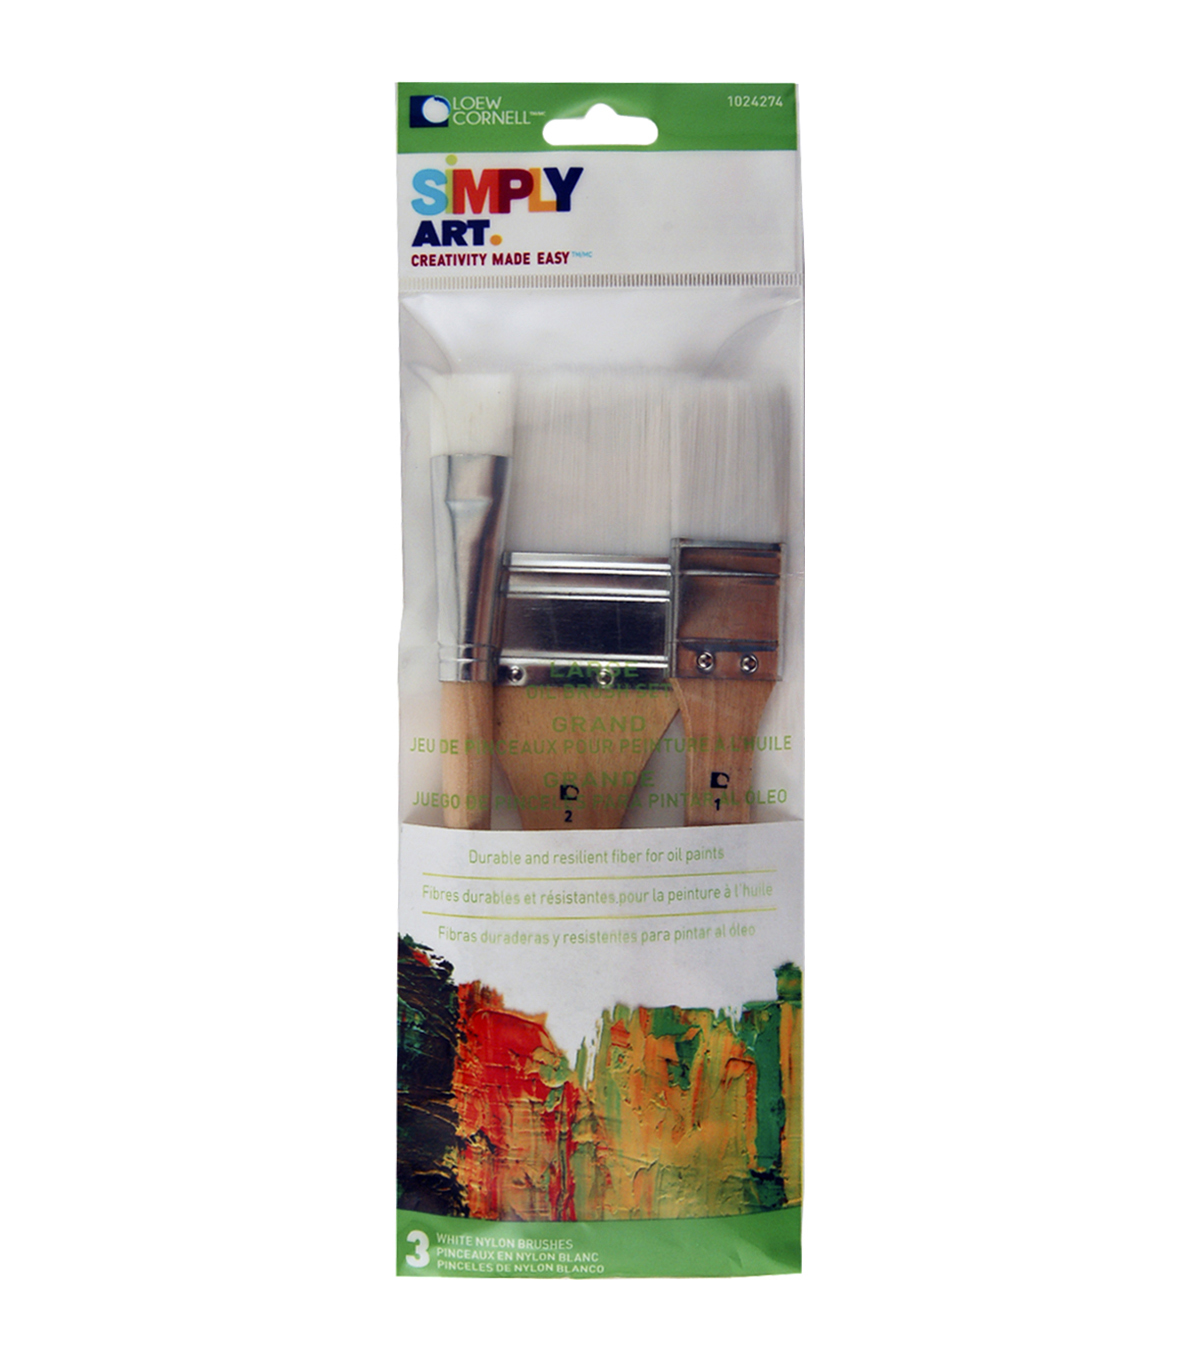 Lowe Cornell Simply Art Large White Nylon Flat Brush Set 3/Pkg-3/4\u0022, 1\u0022 & 2\u0022